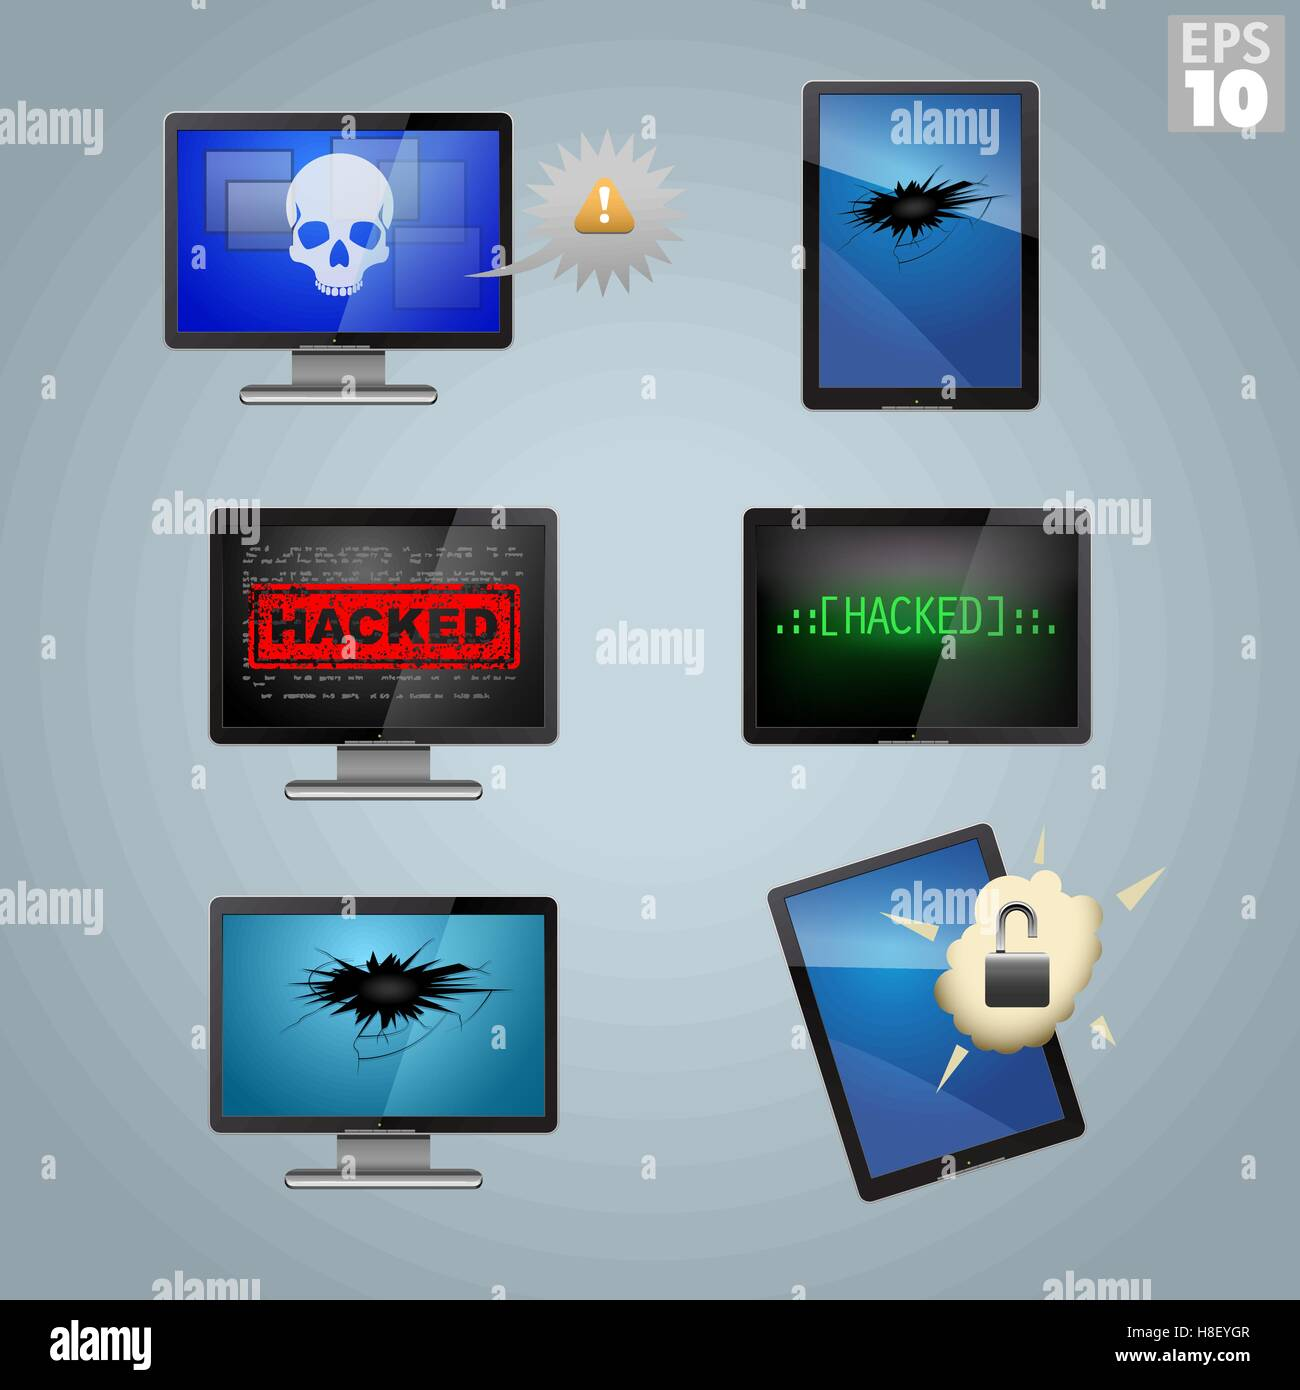 Computers and tablets hacked, broken, and infected - Stock Vector